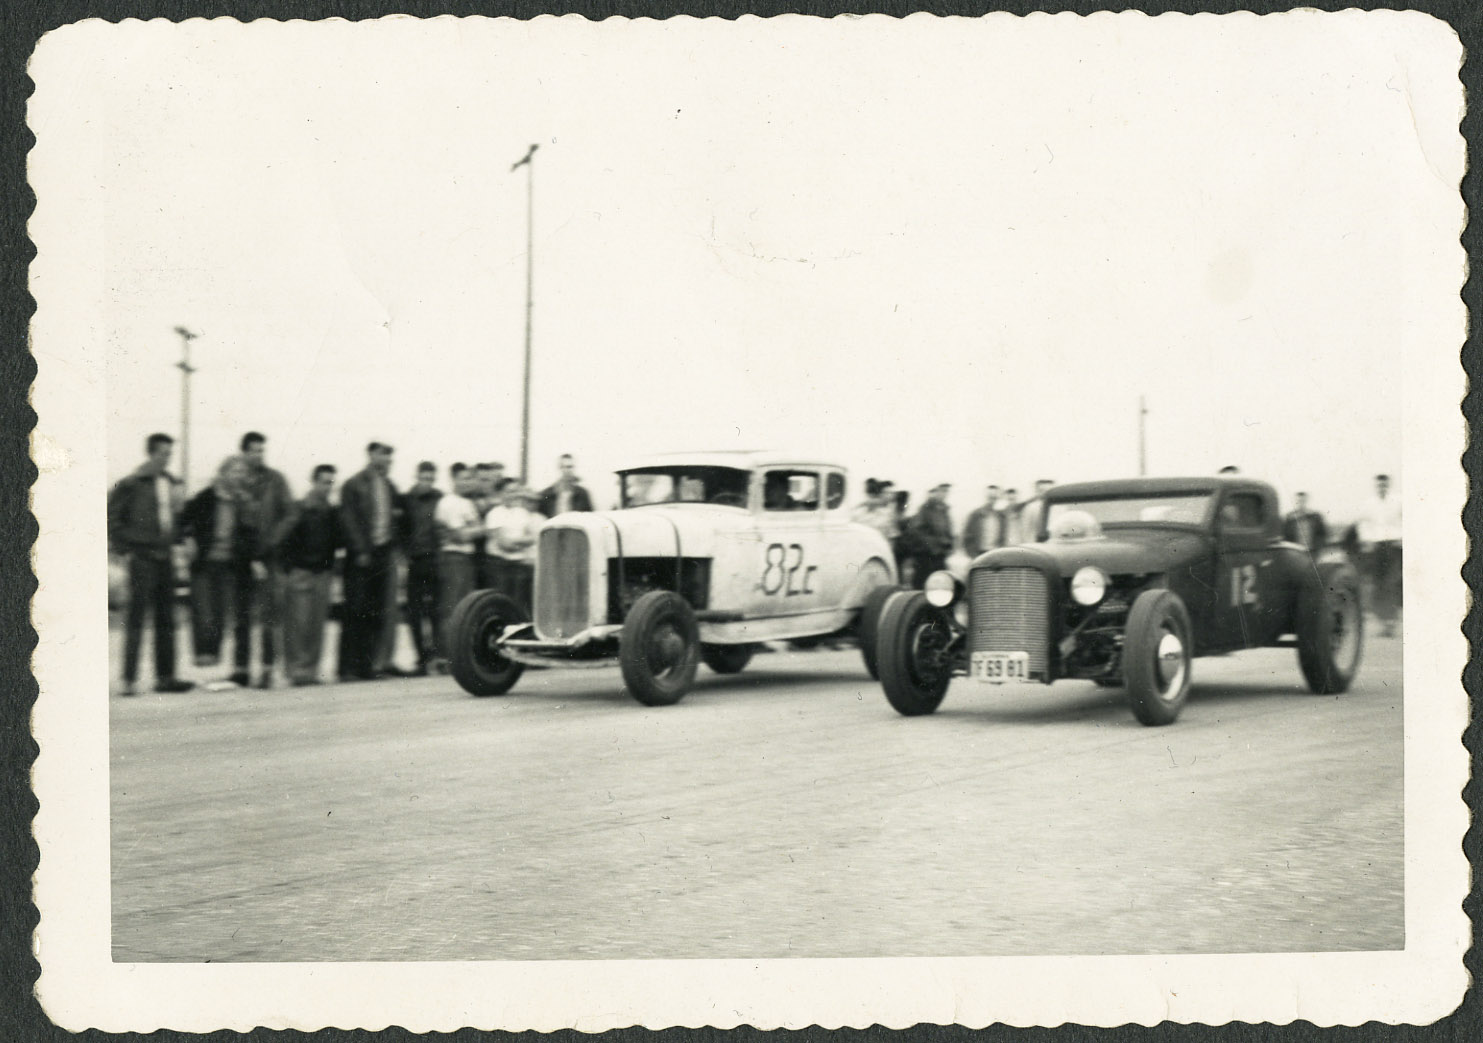 From The Rodder's Journal Vault: Incredible Vintage Photos And The Stories Behind Them